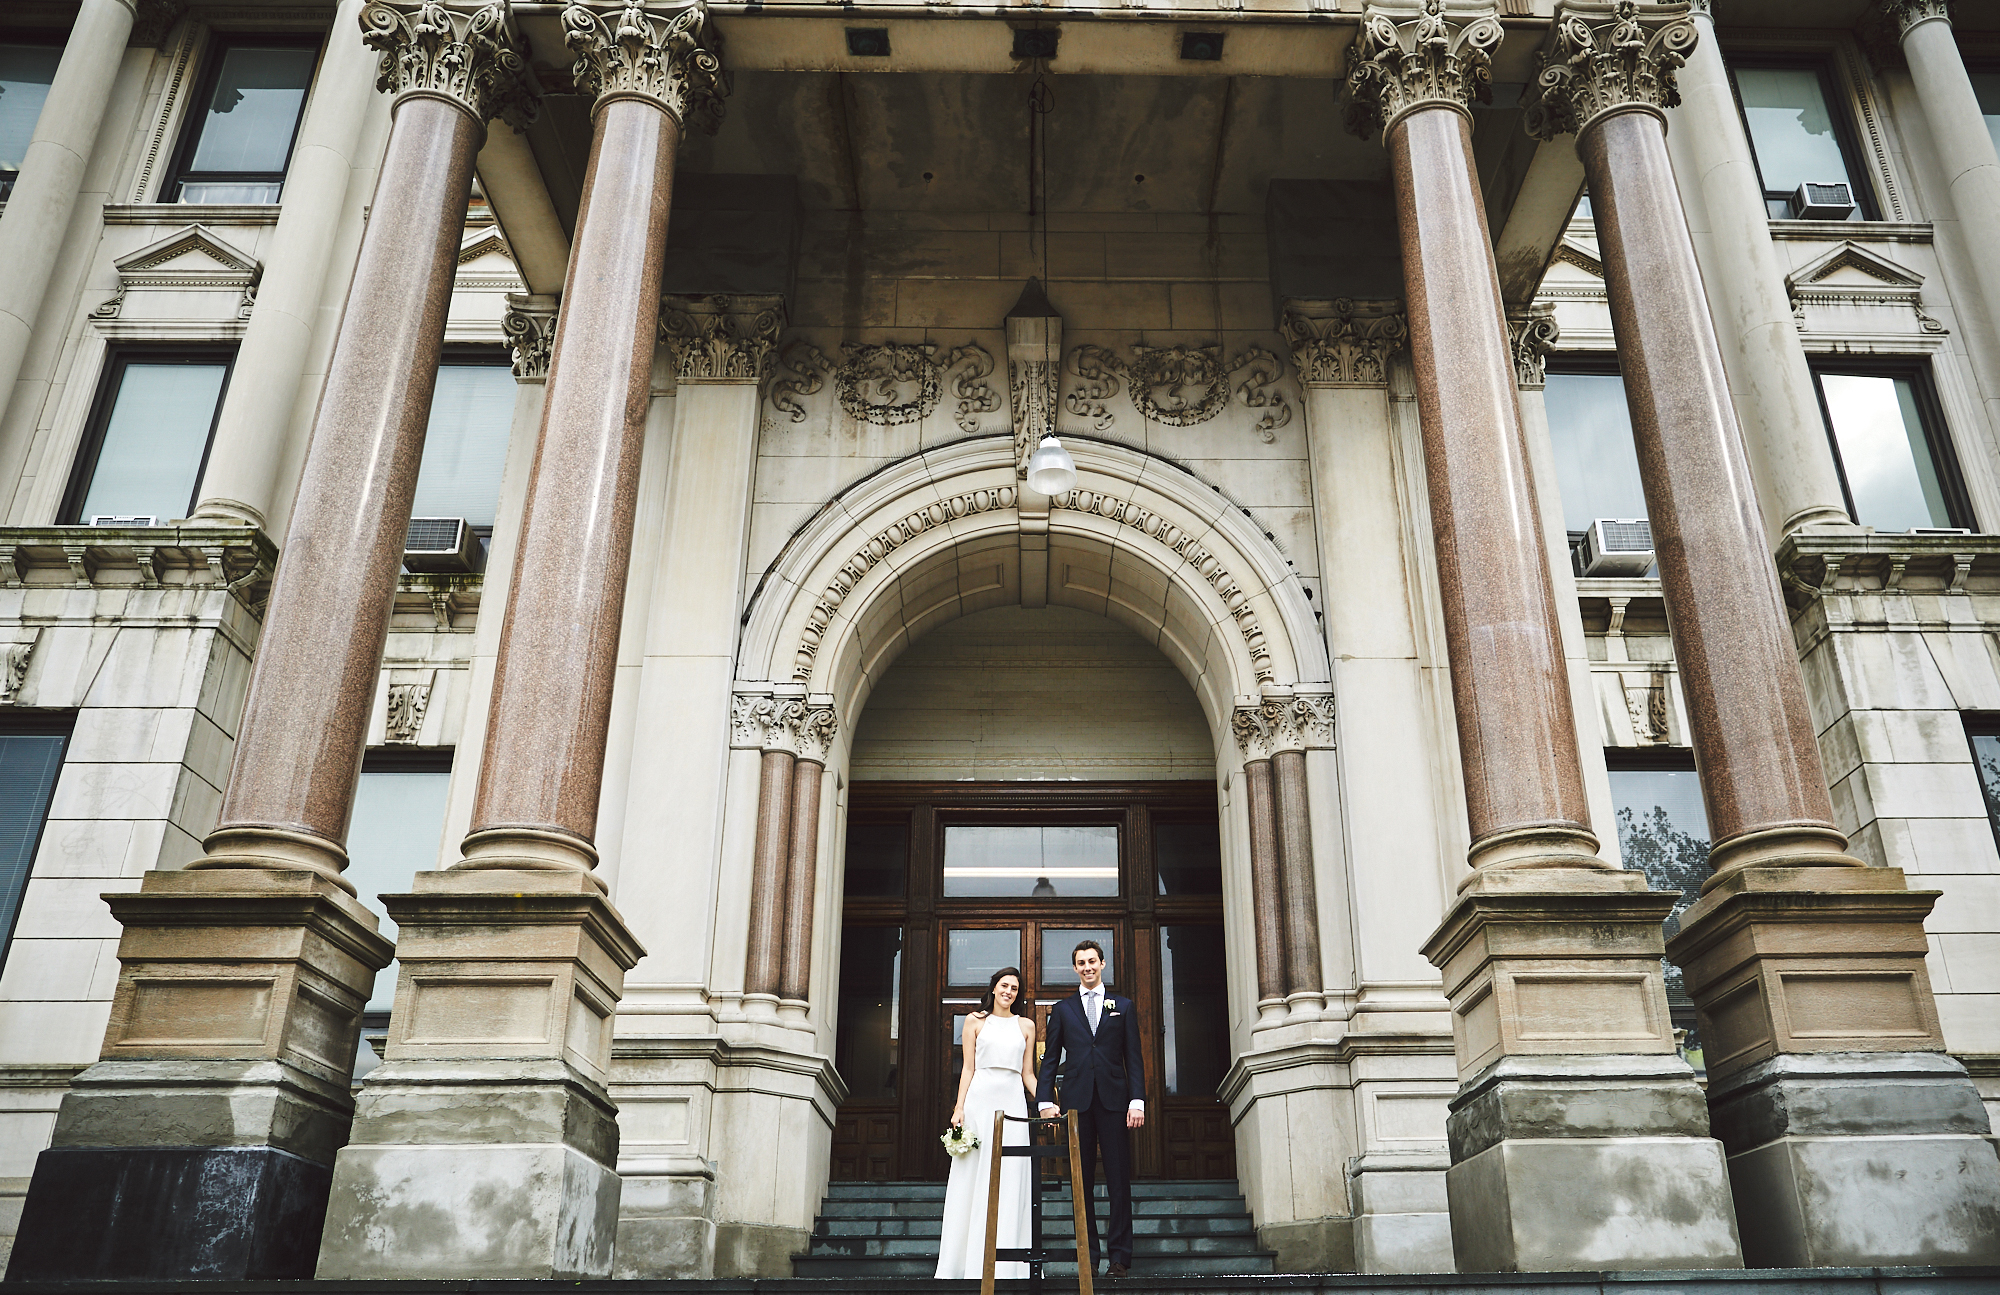 181116_JerseyCityCityHallFallWeddingPhotography_JerseyCityWeddingPhotographer_By_BriJohnsonWeddings_0053.jpg